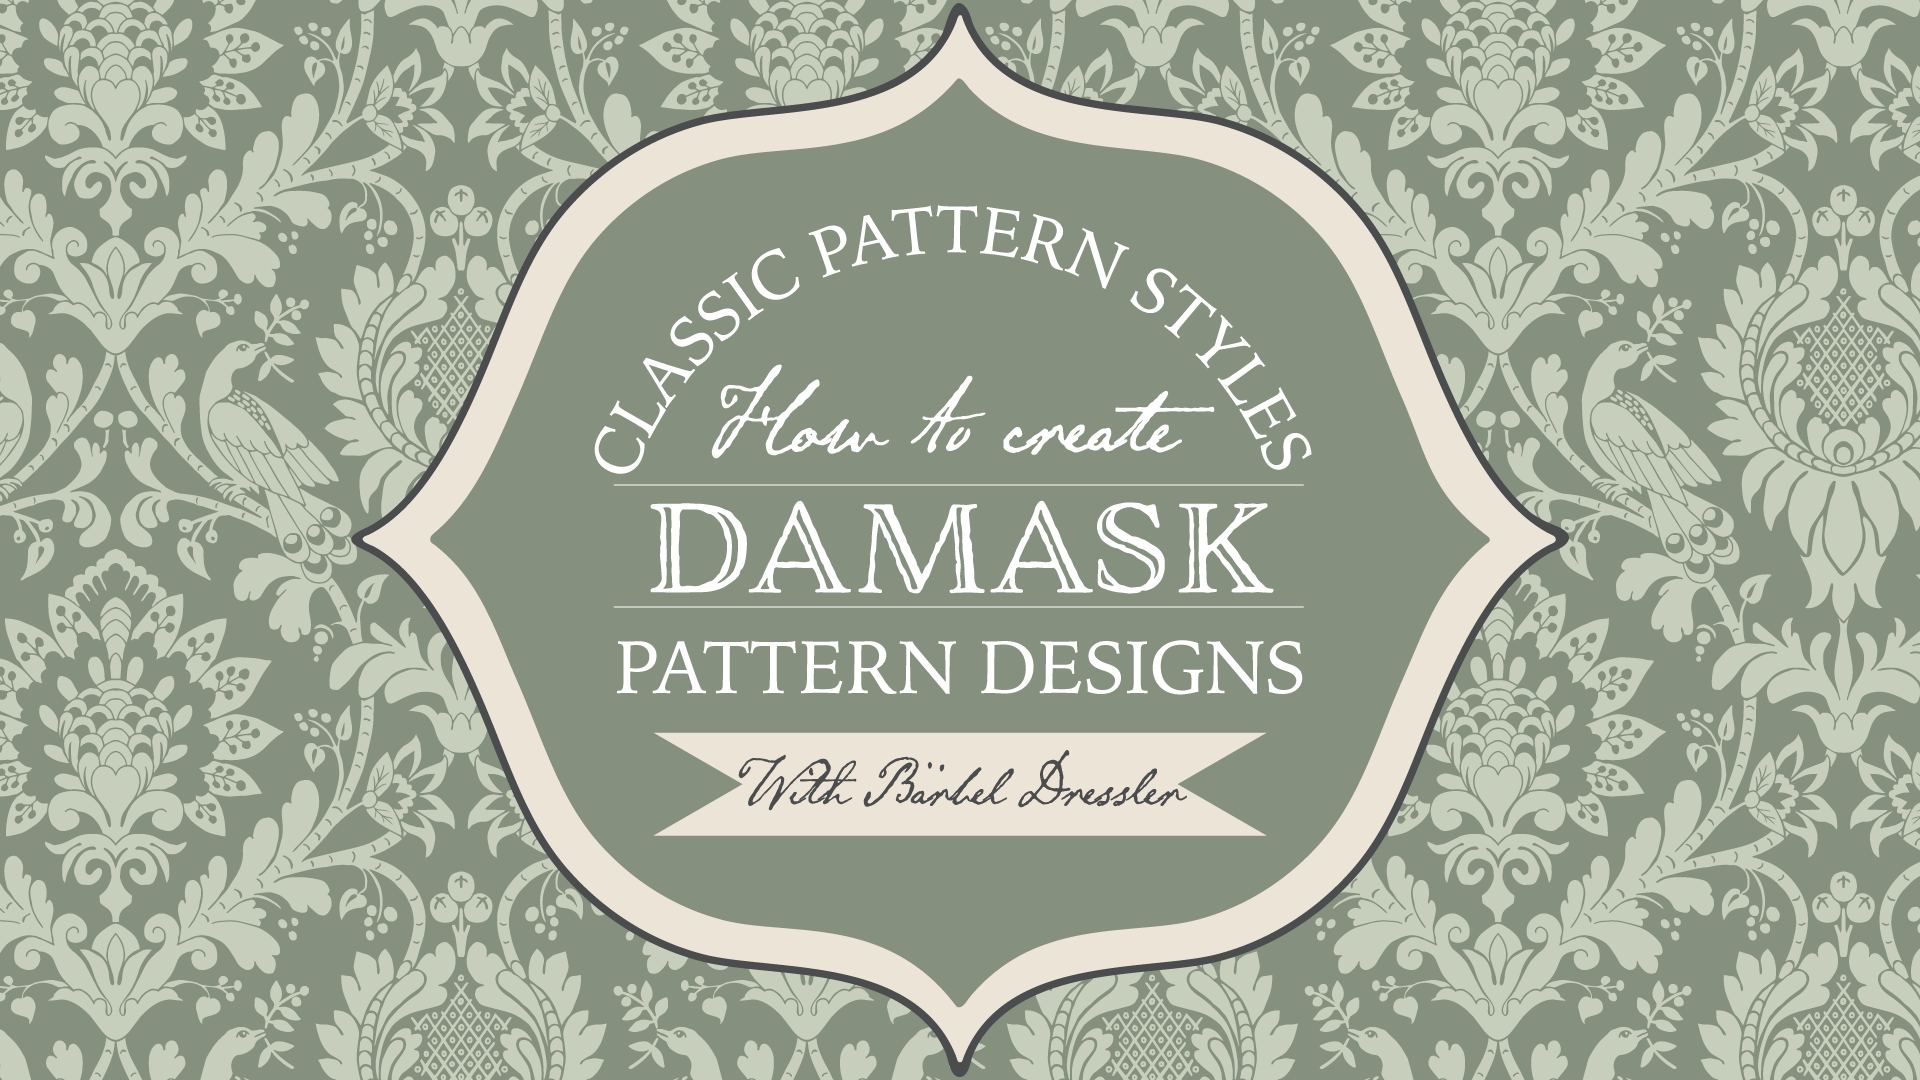 Merch_Damask_1600x900.png